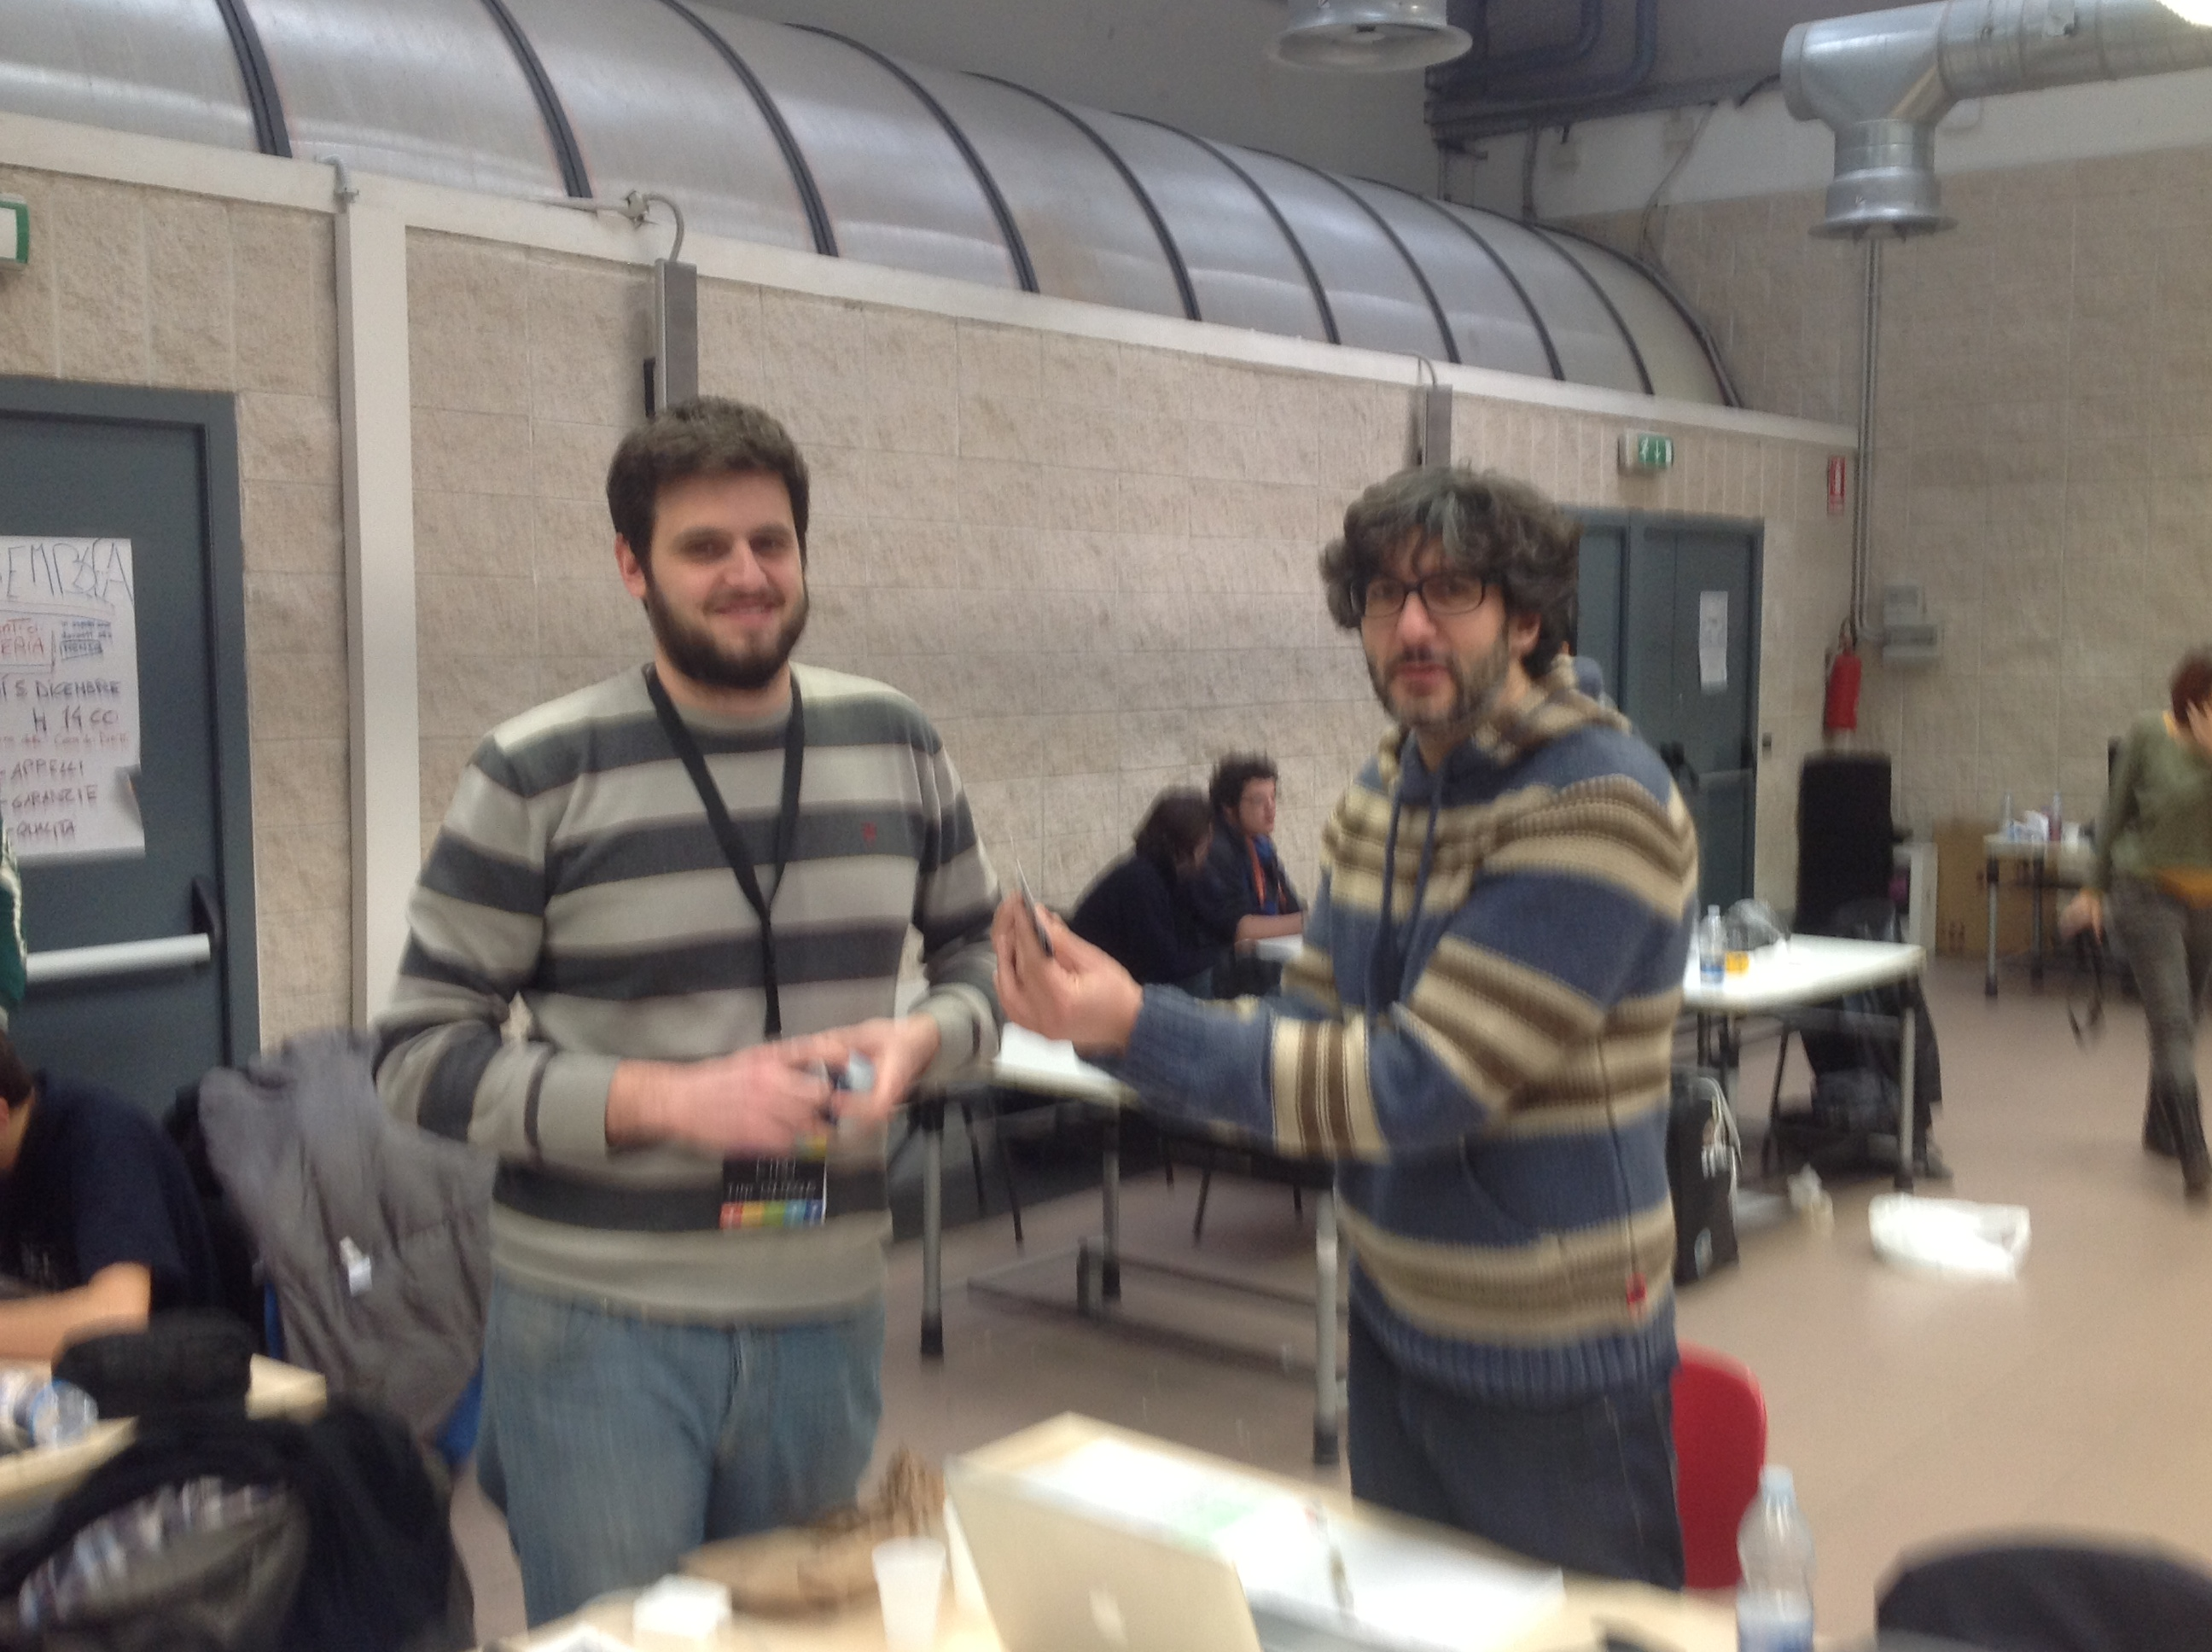 Andrea Ferlito and Ciro Continisio at #GGJ13